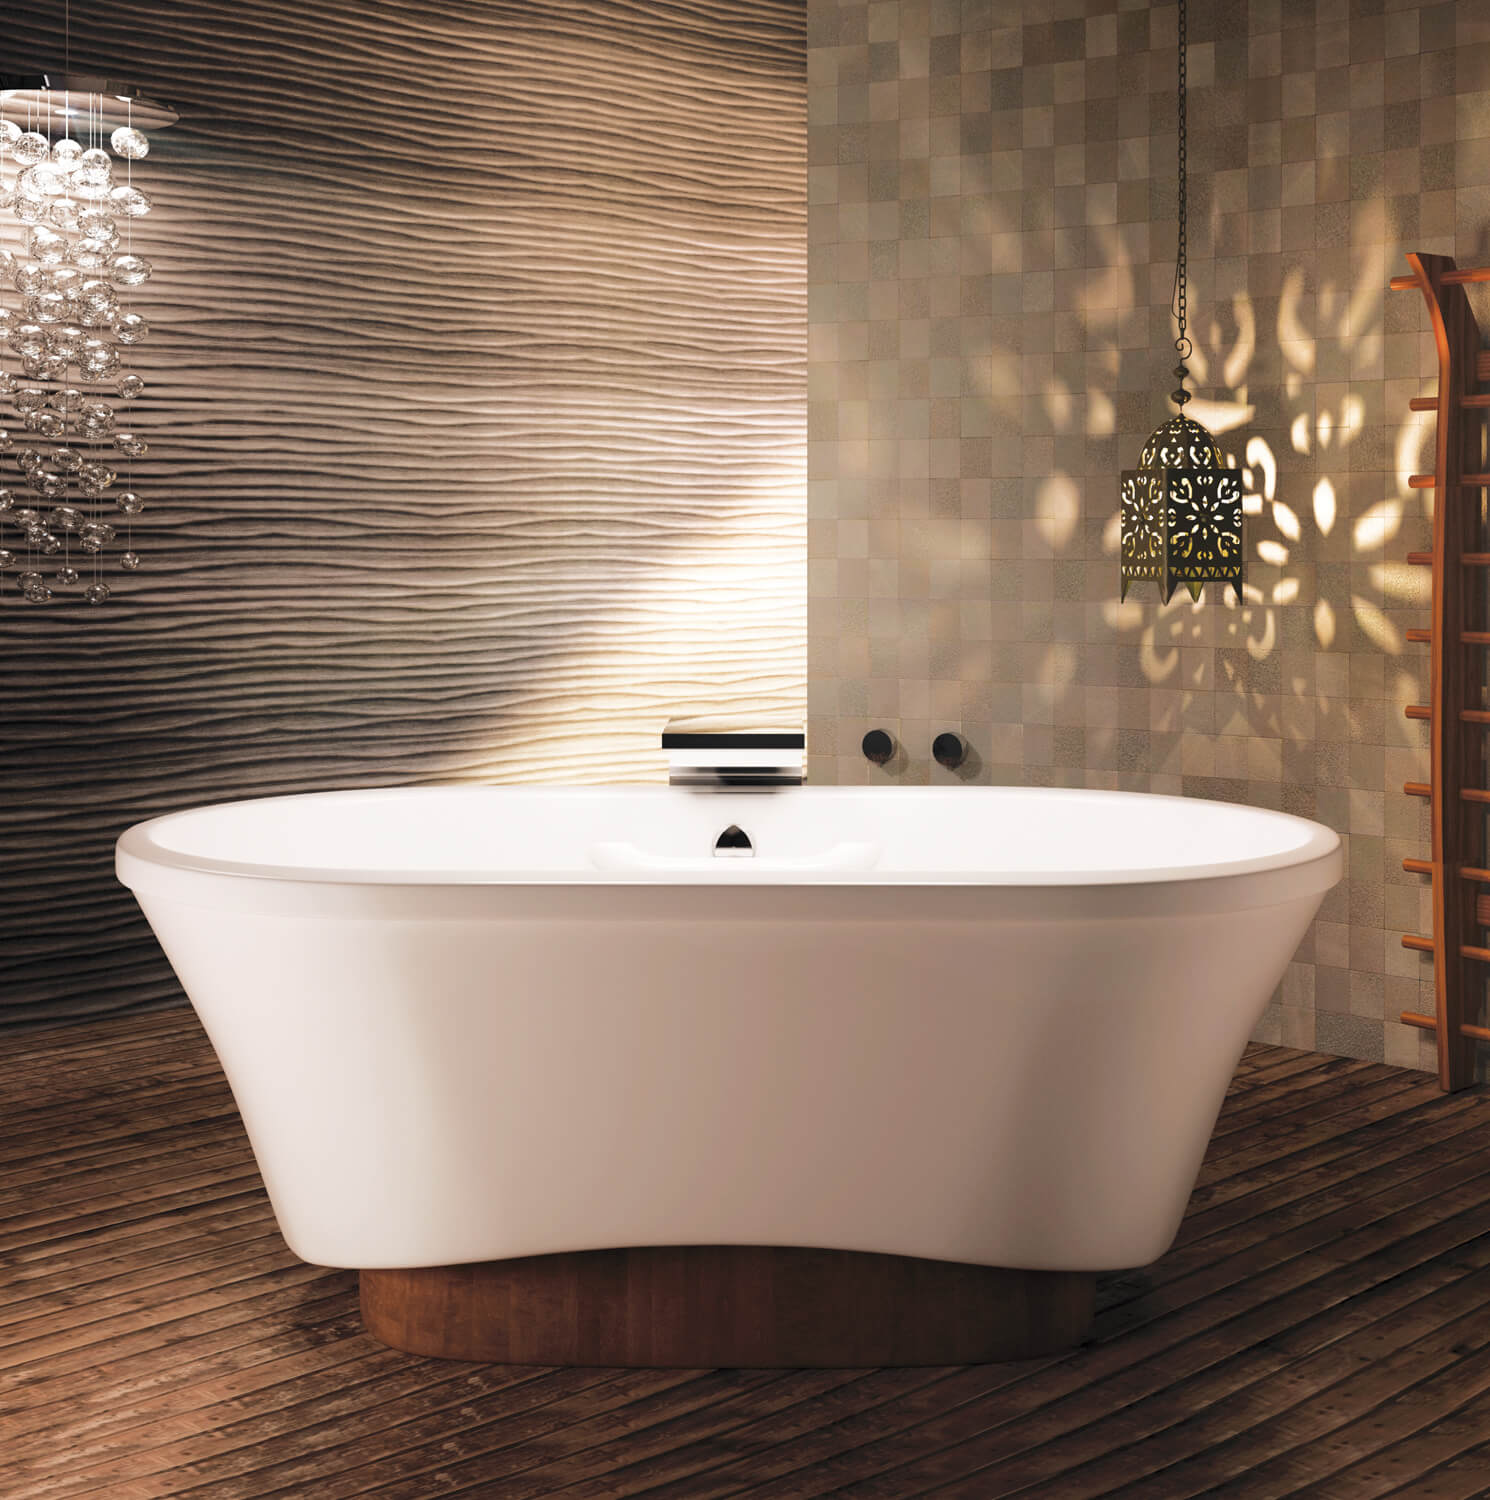 Bainultra Amma  OVAL 7242 freestanding pedestal air jet bathtub for two Two person tub BainUltra